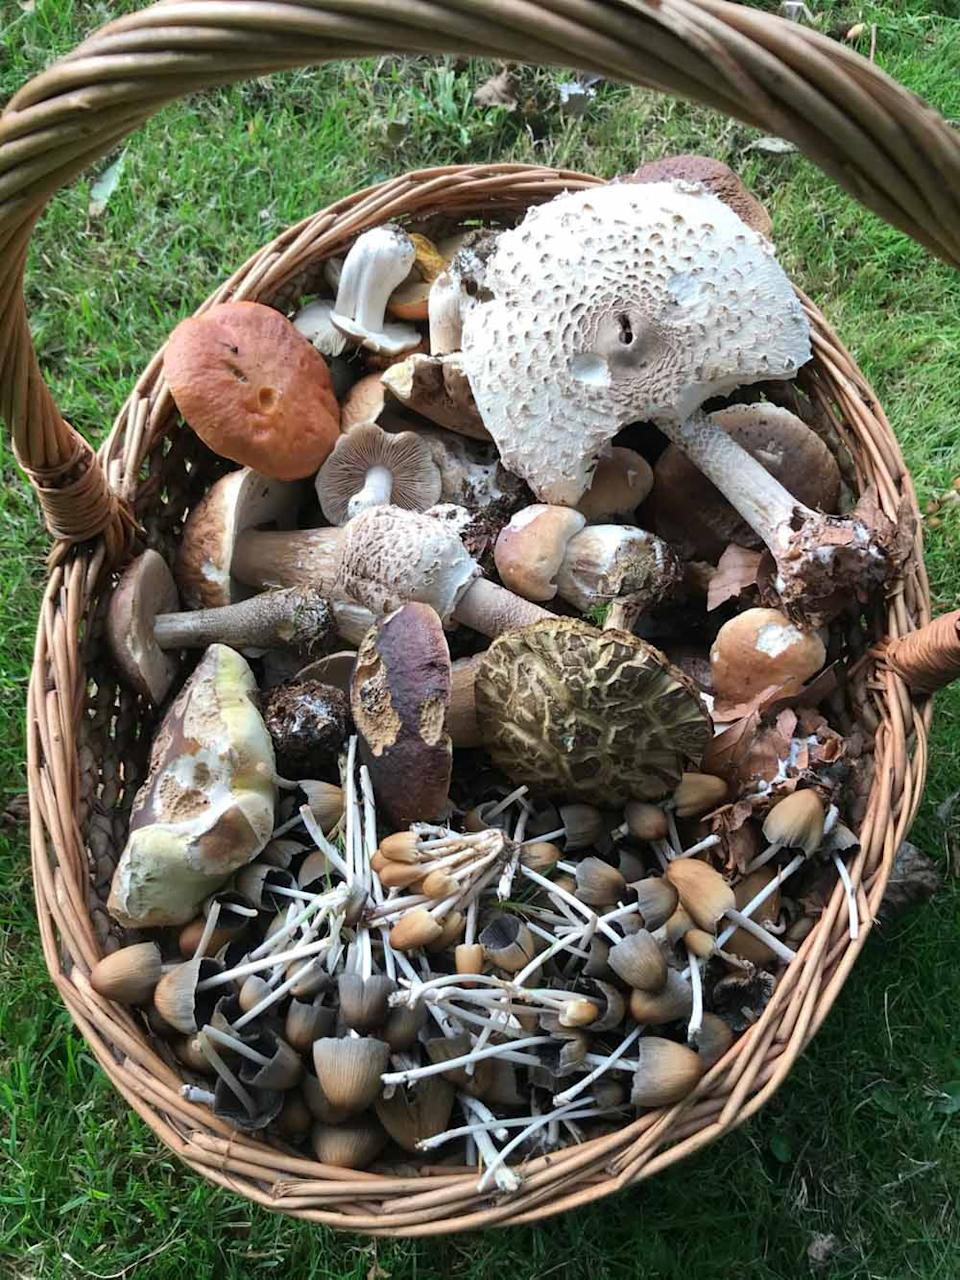 Emily says she no longer buys mushrooms anymore (Collect/PA Real Life).